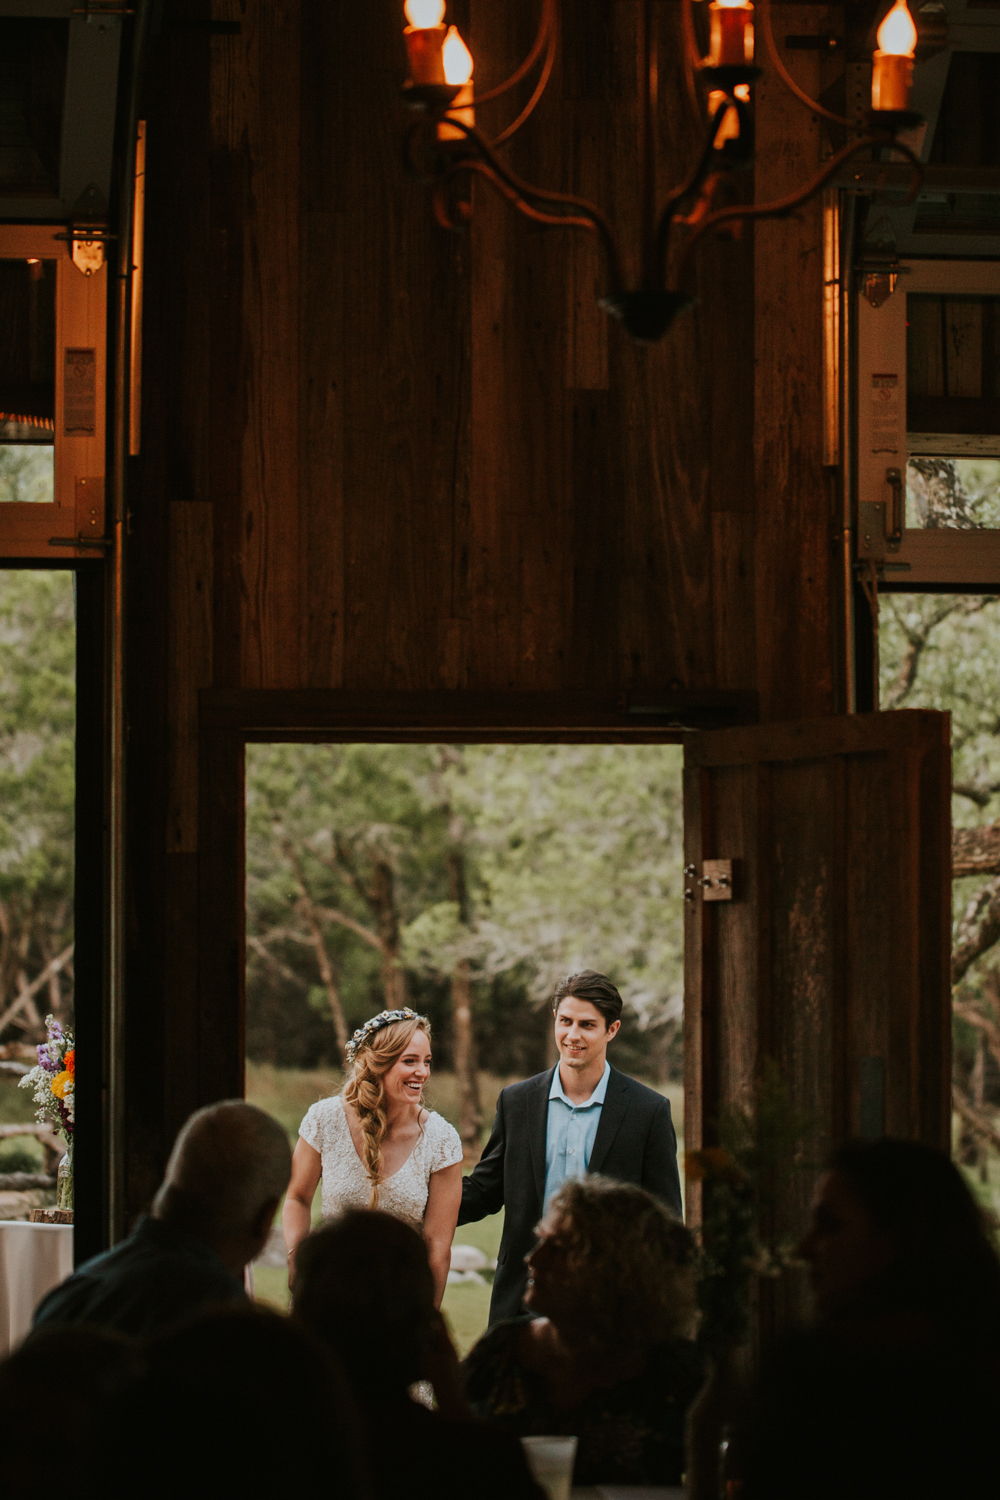 Rustic Ranch Wedding Photography - Diana Ascarrunz Photography - Austin Wedding Photographer-92.jpg